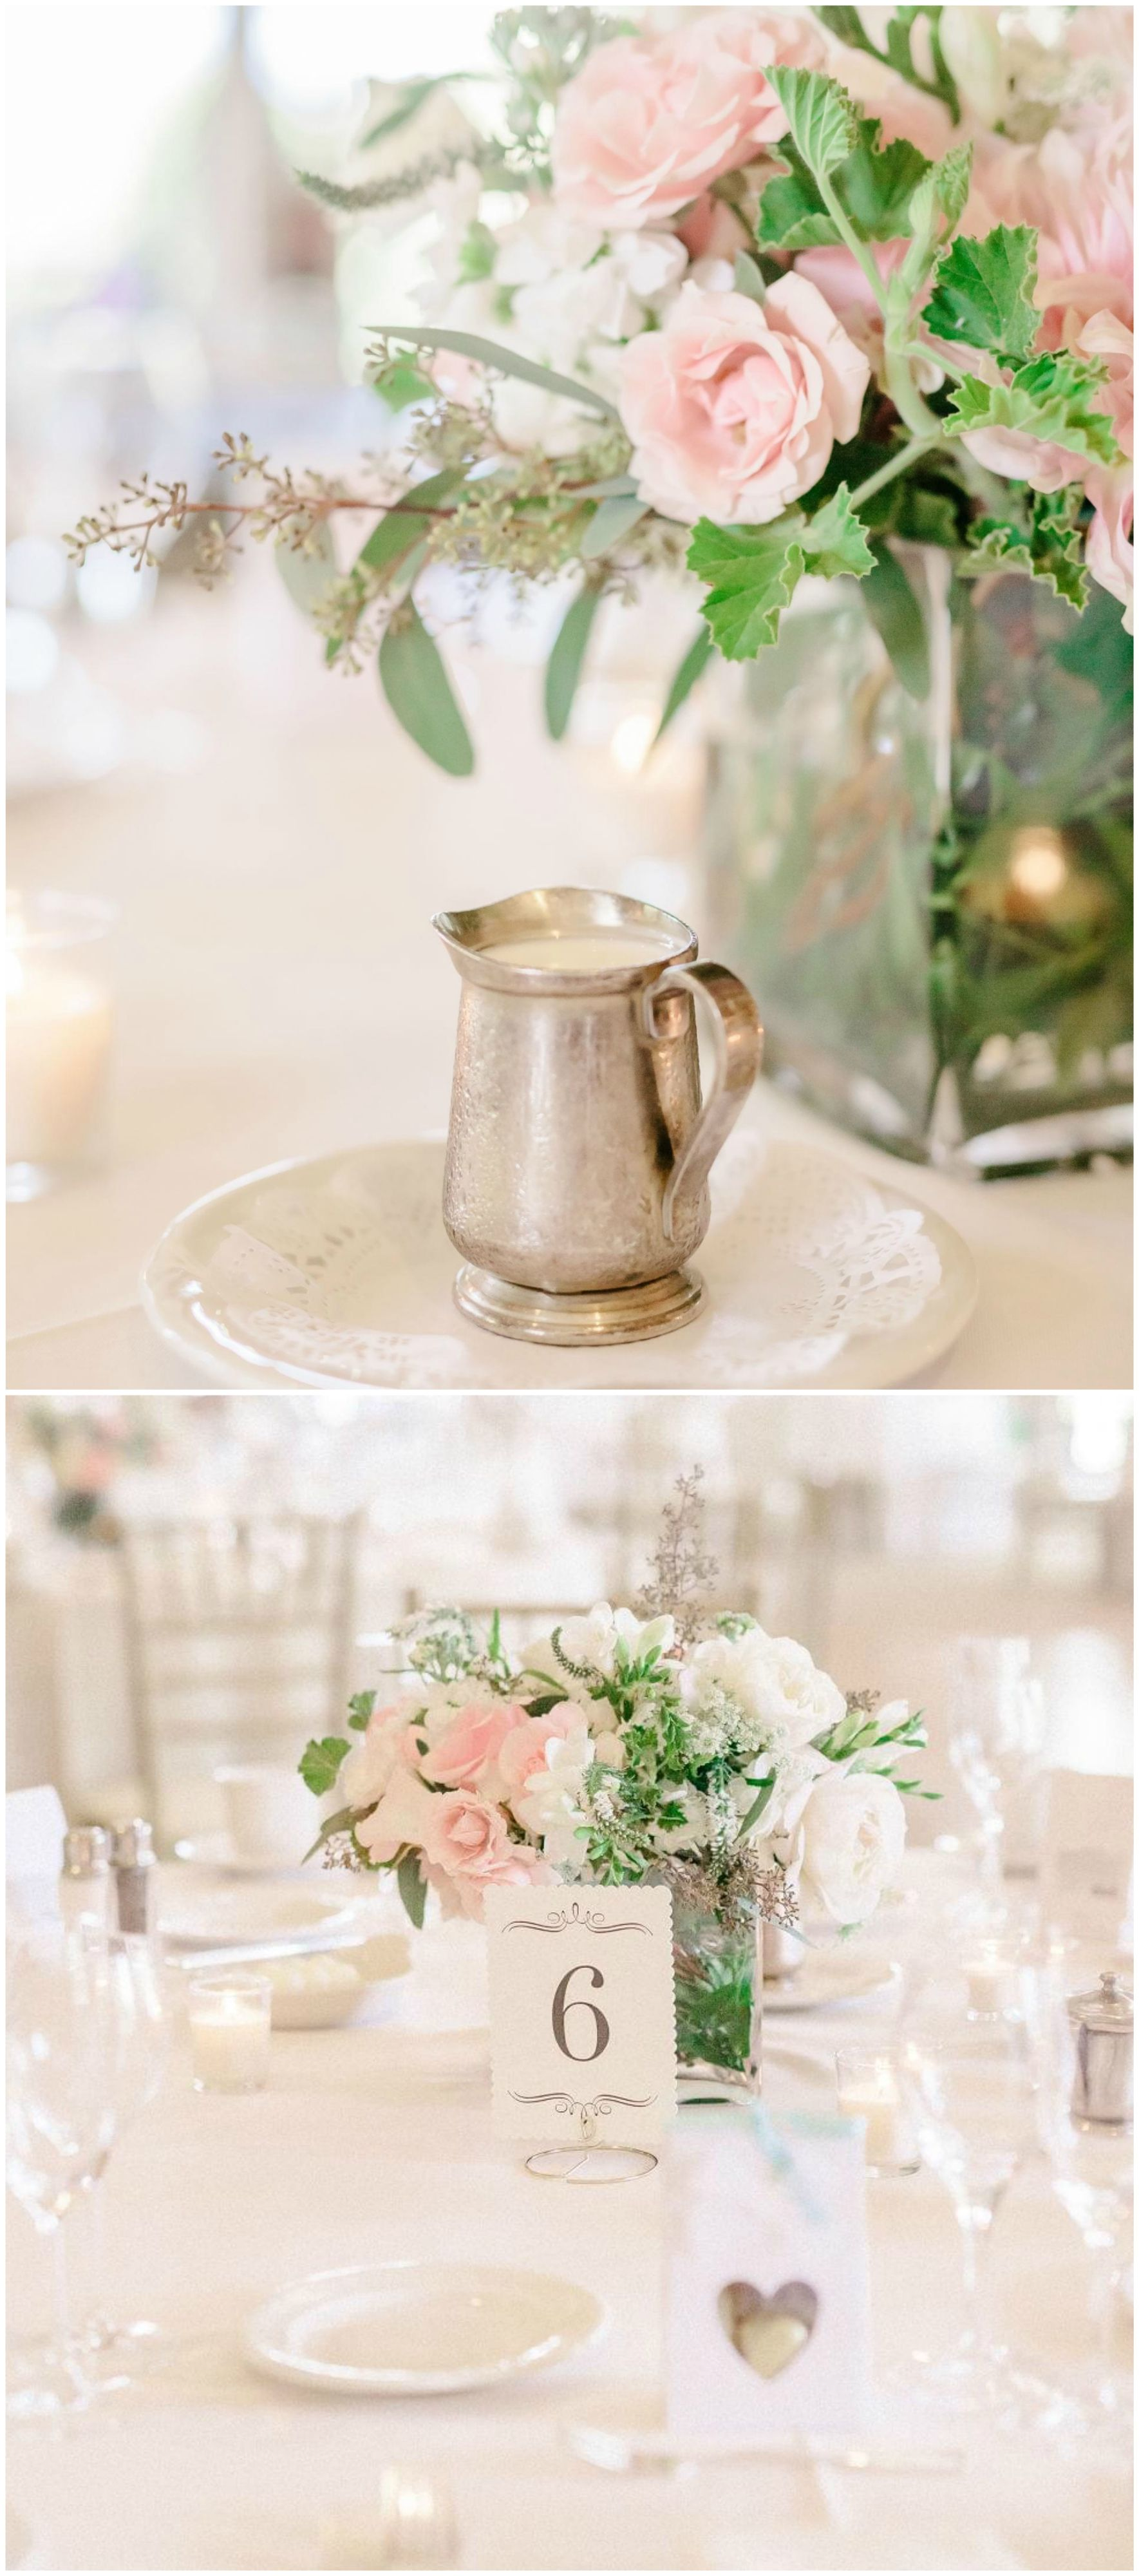 The Smarter Way to Wed | Rose centerpieces, Classic weddings and ...